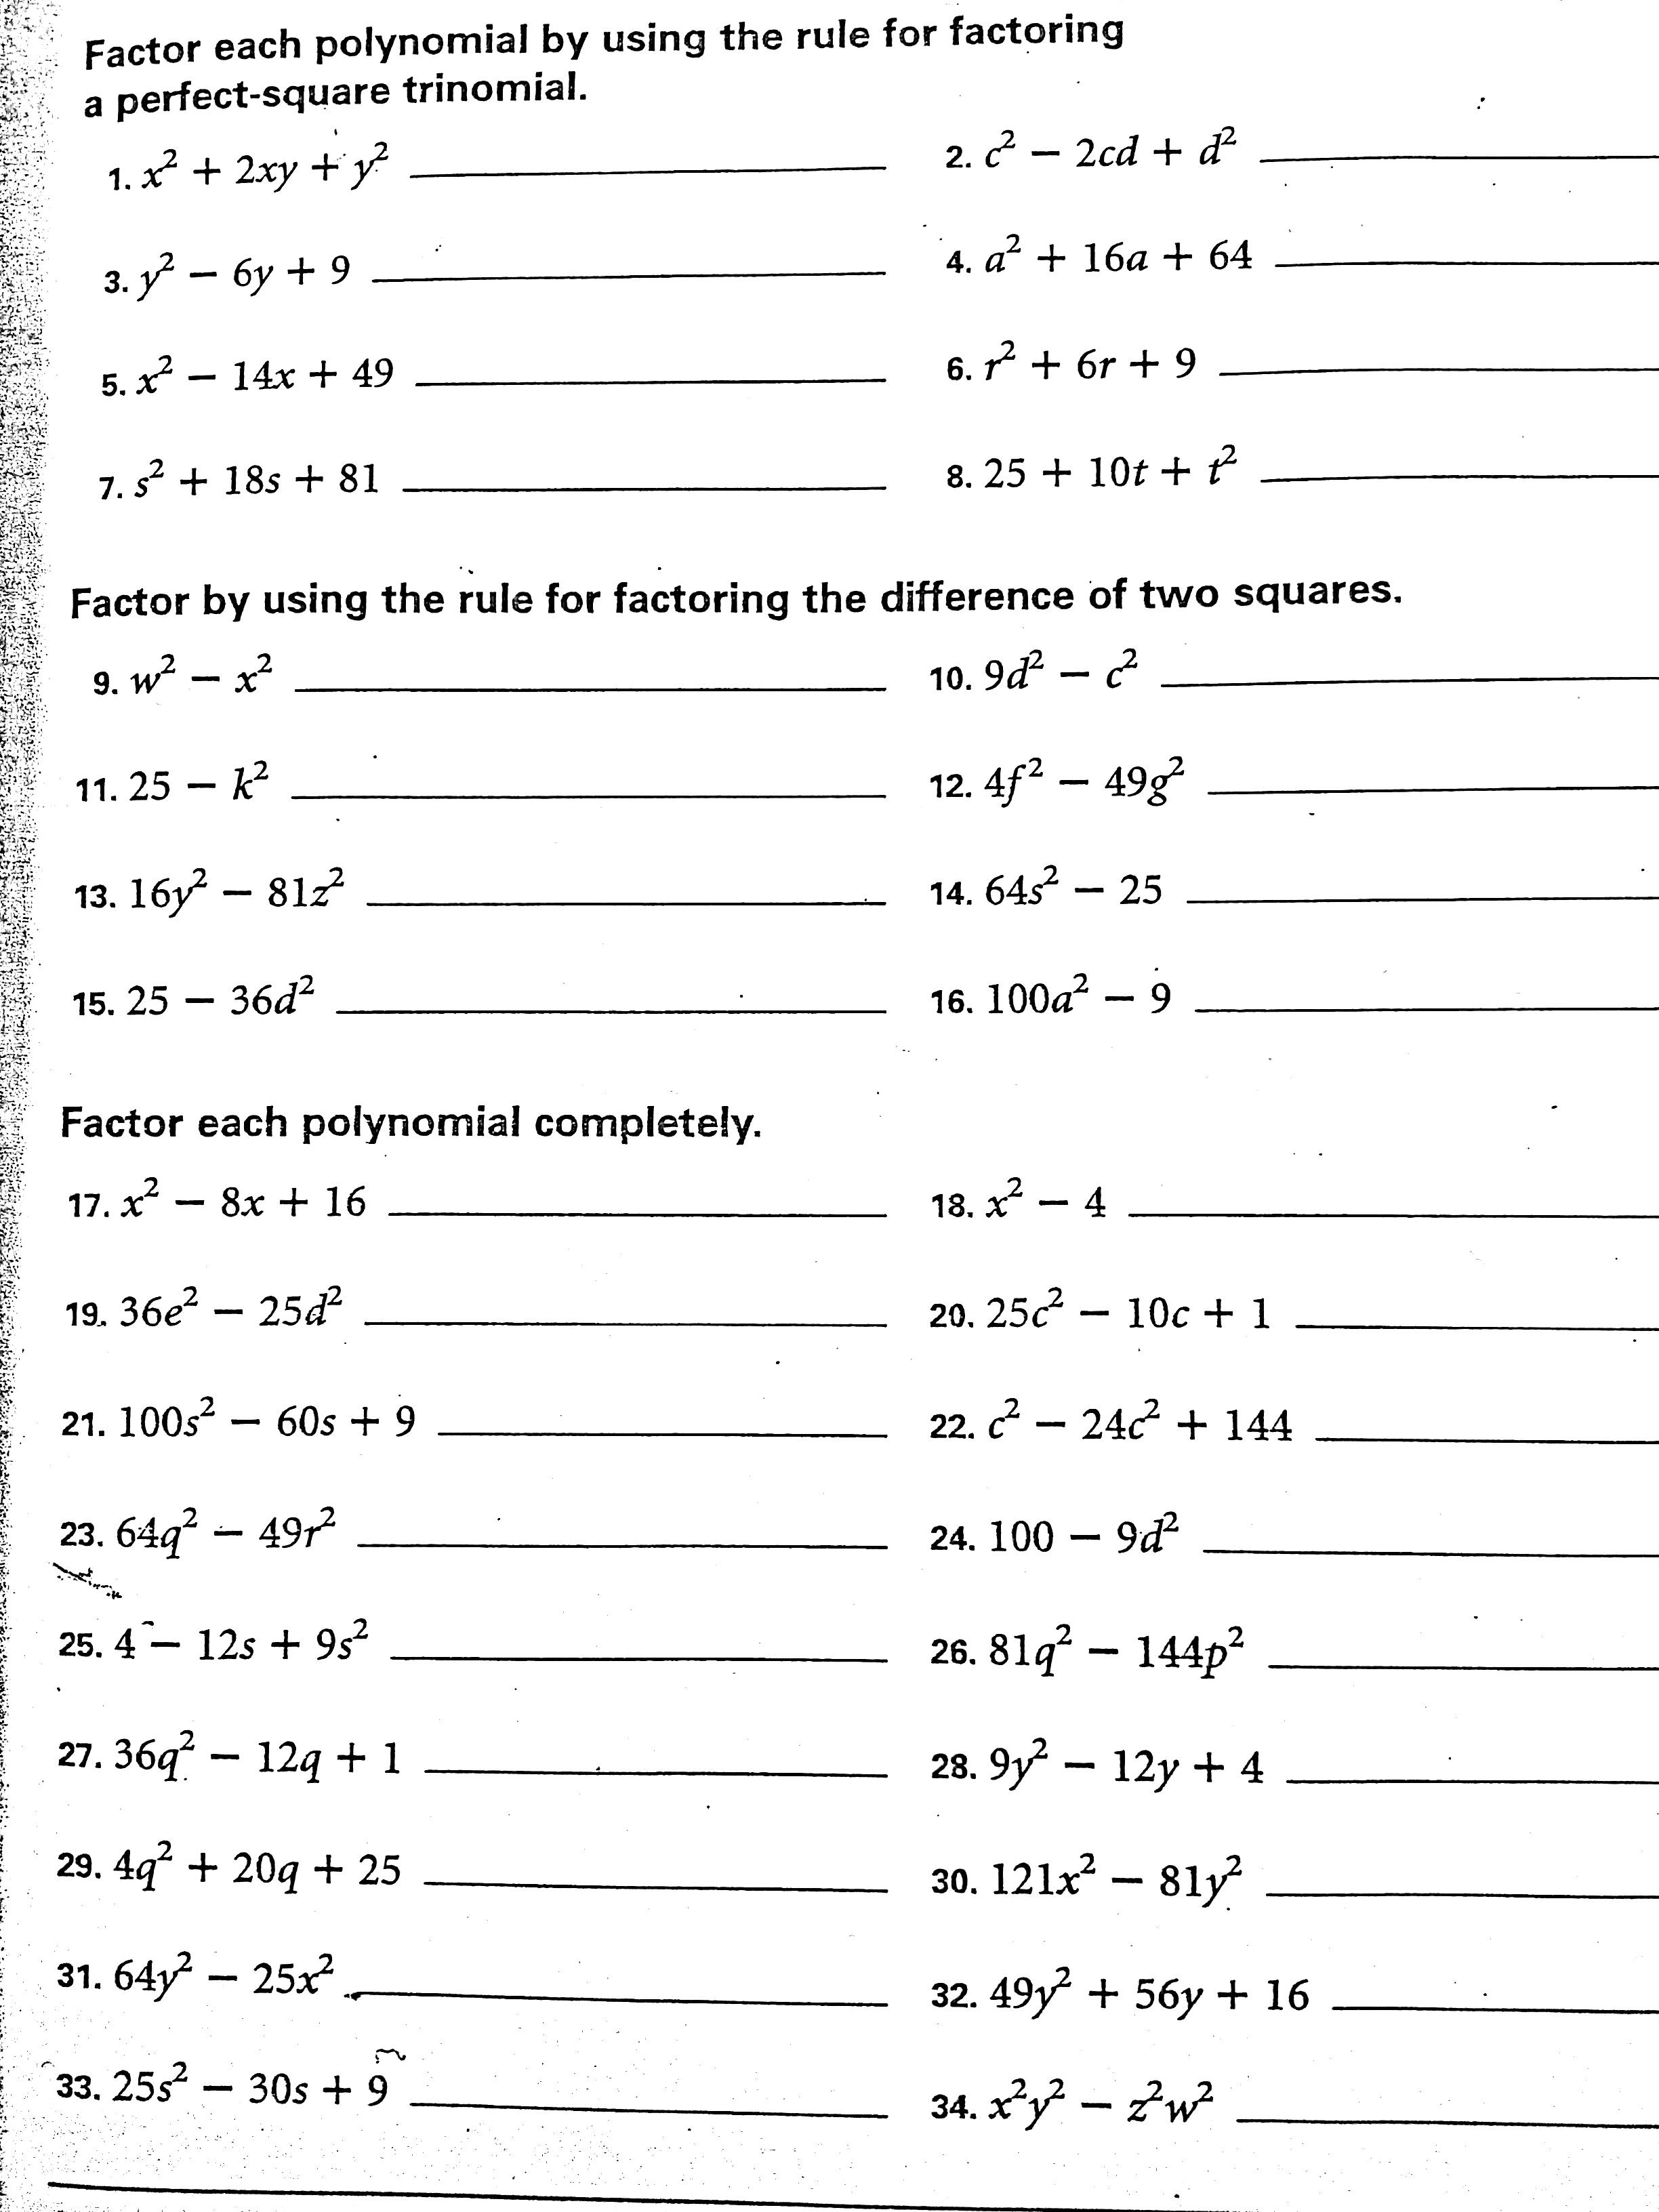 factoring difference of squares worksheet Termolak – Difference of Two Squares Worksheet